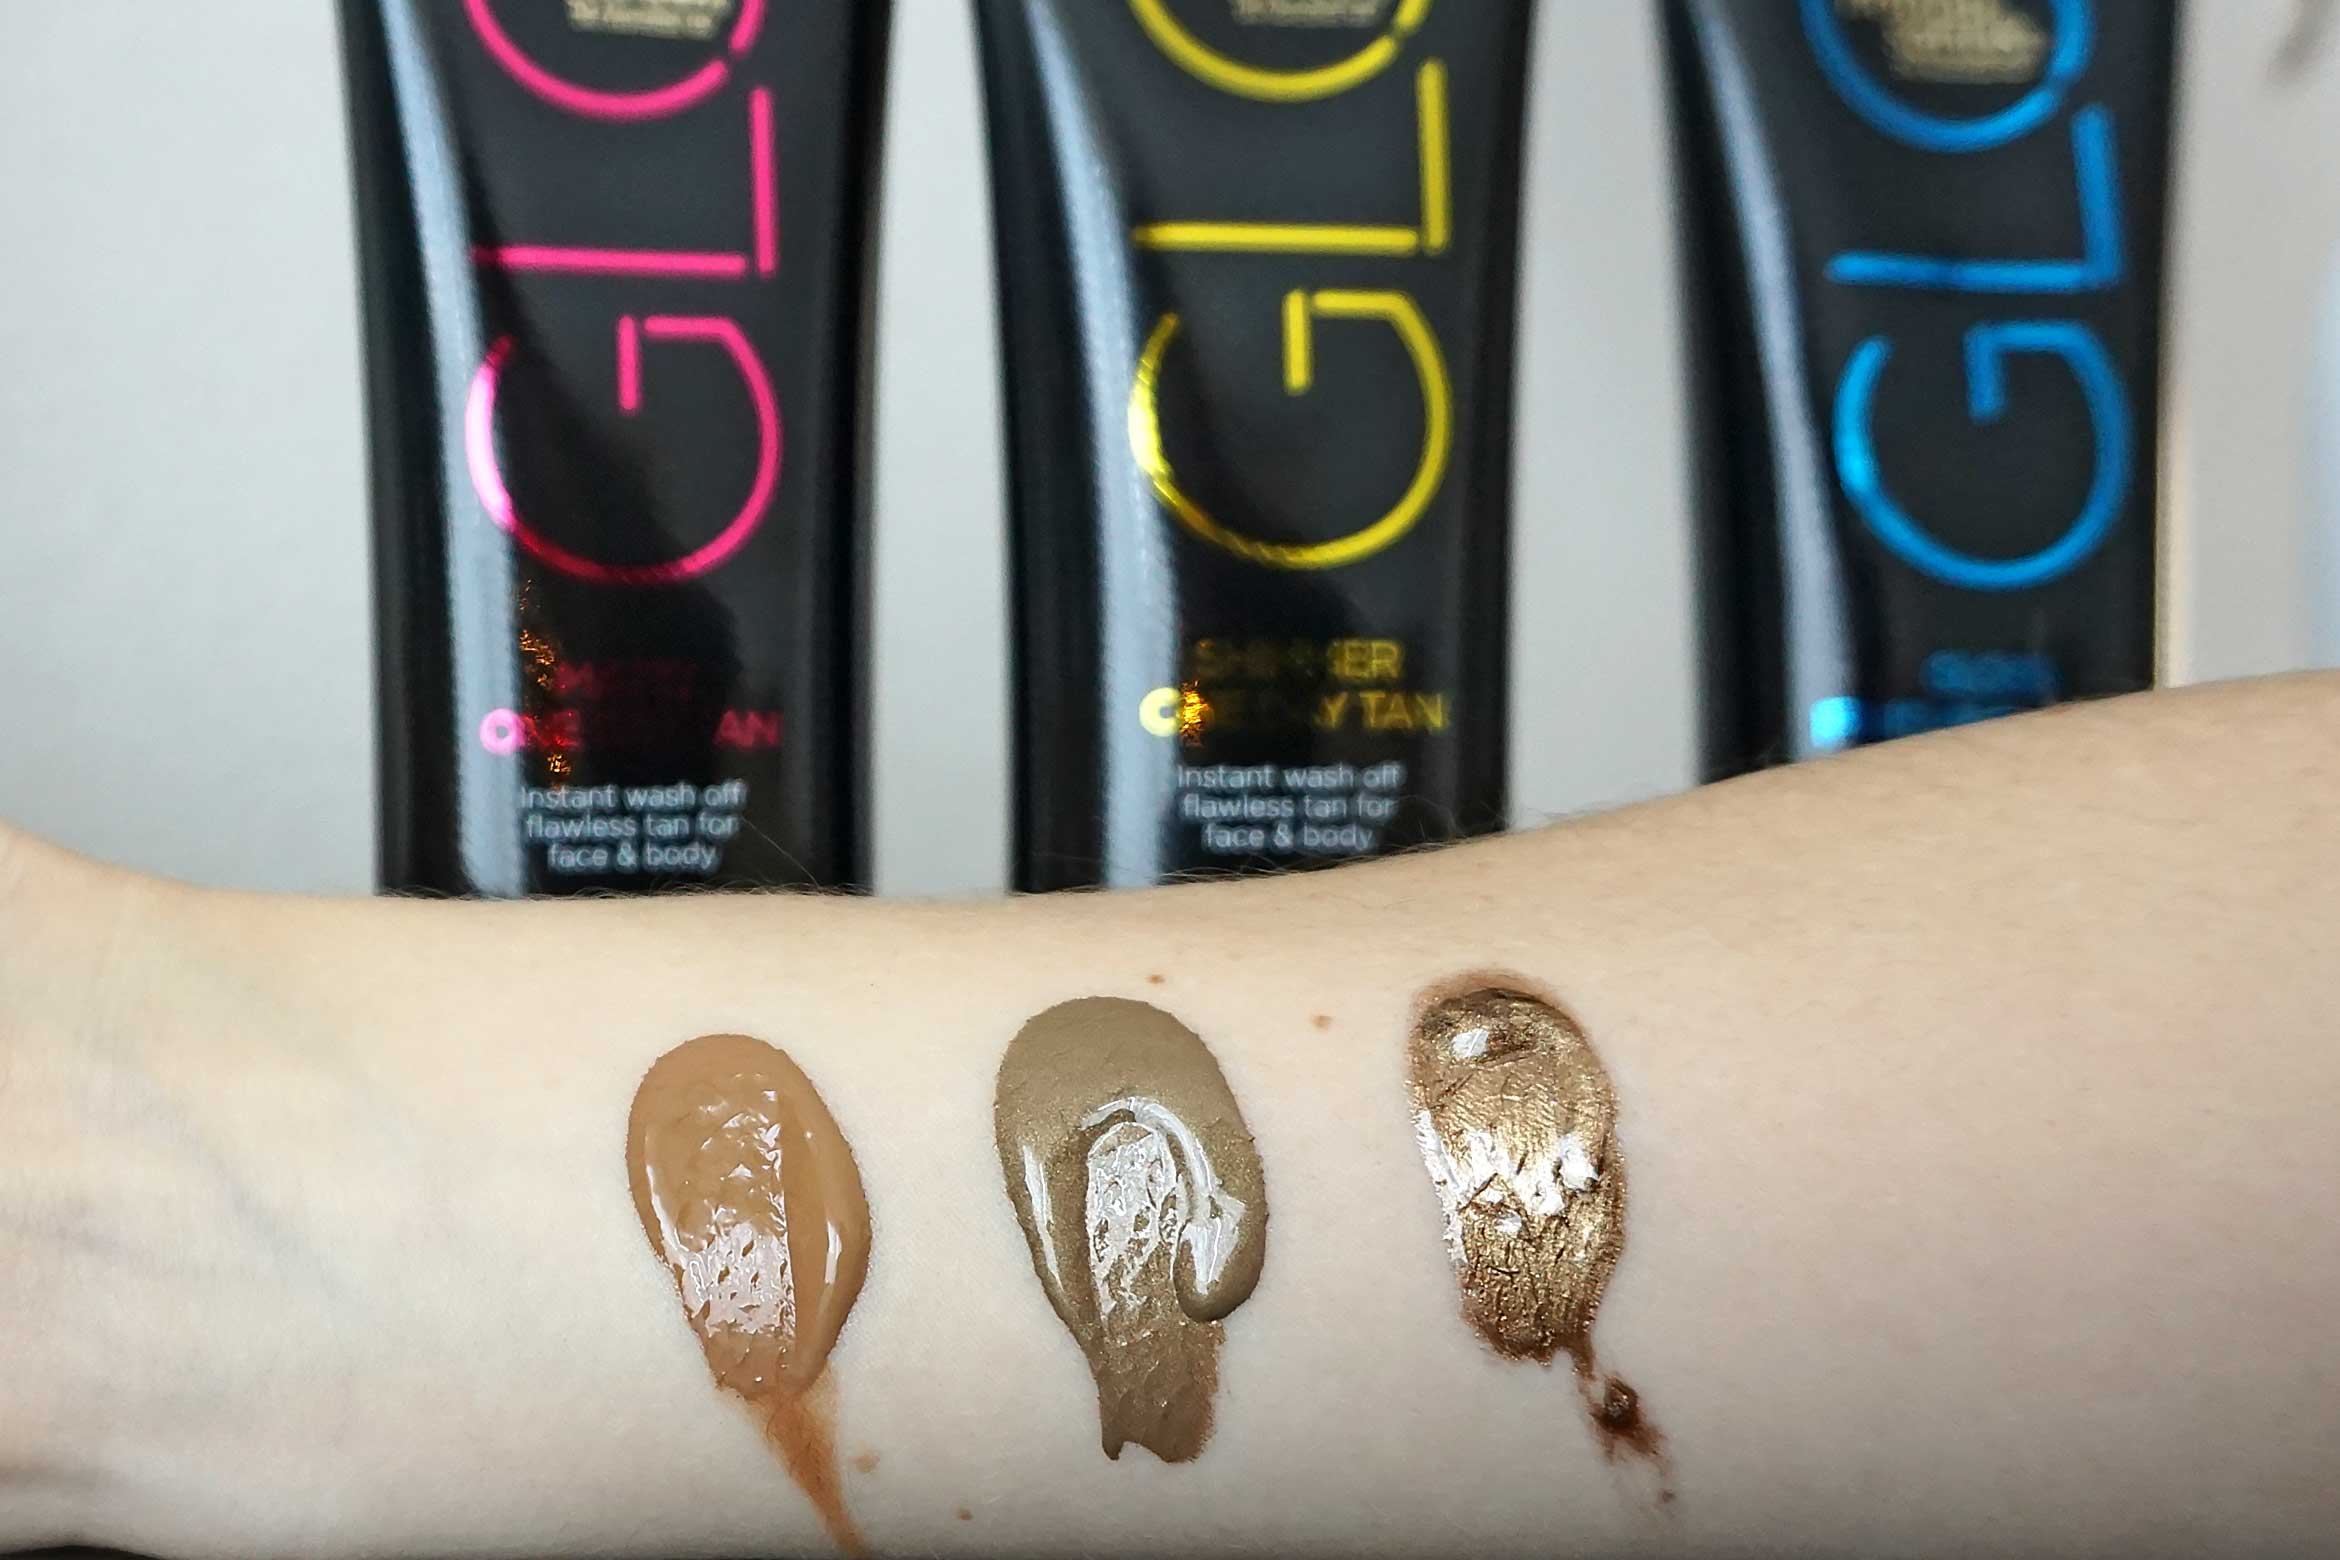 Bondi Sands Glo swatch review